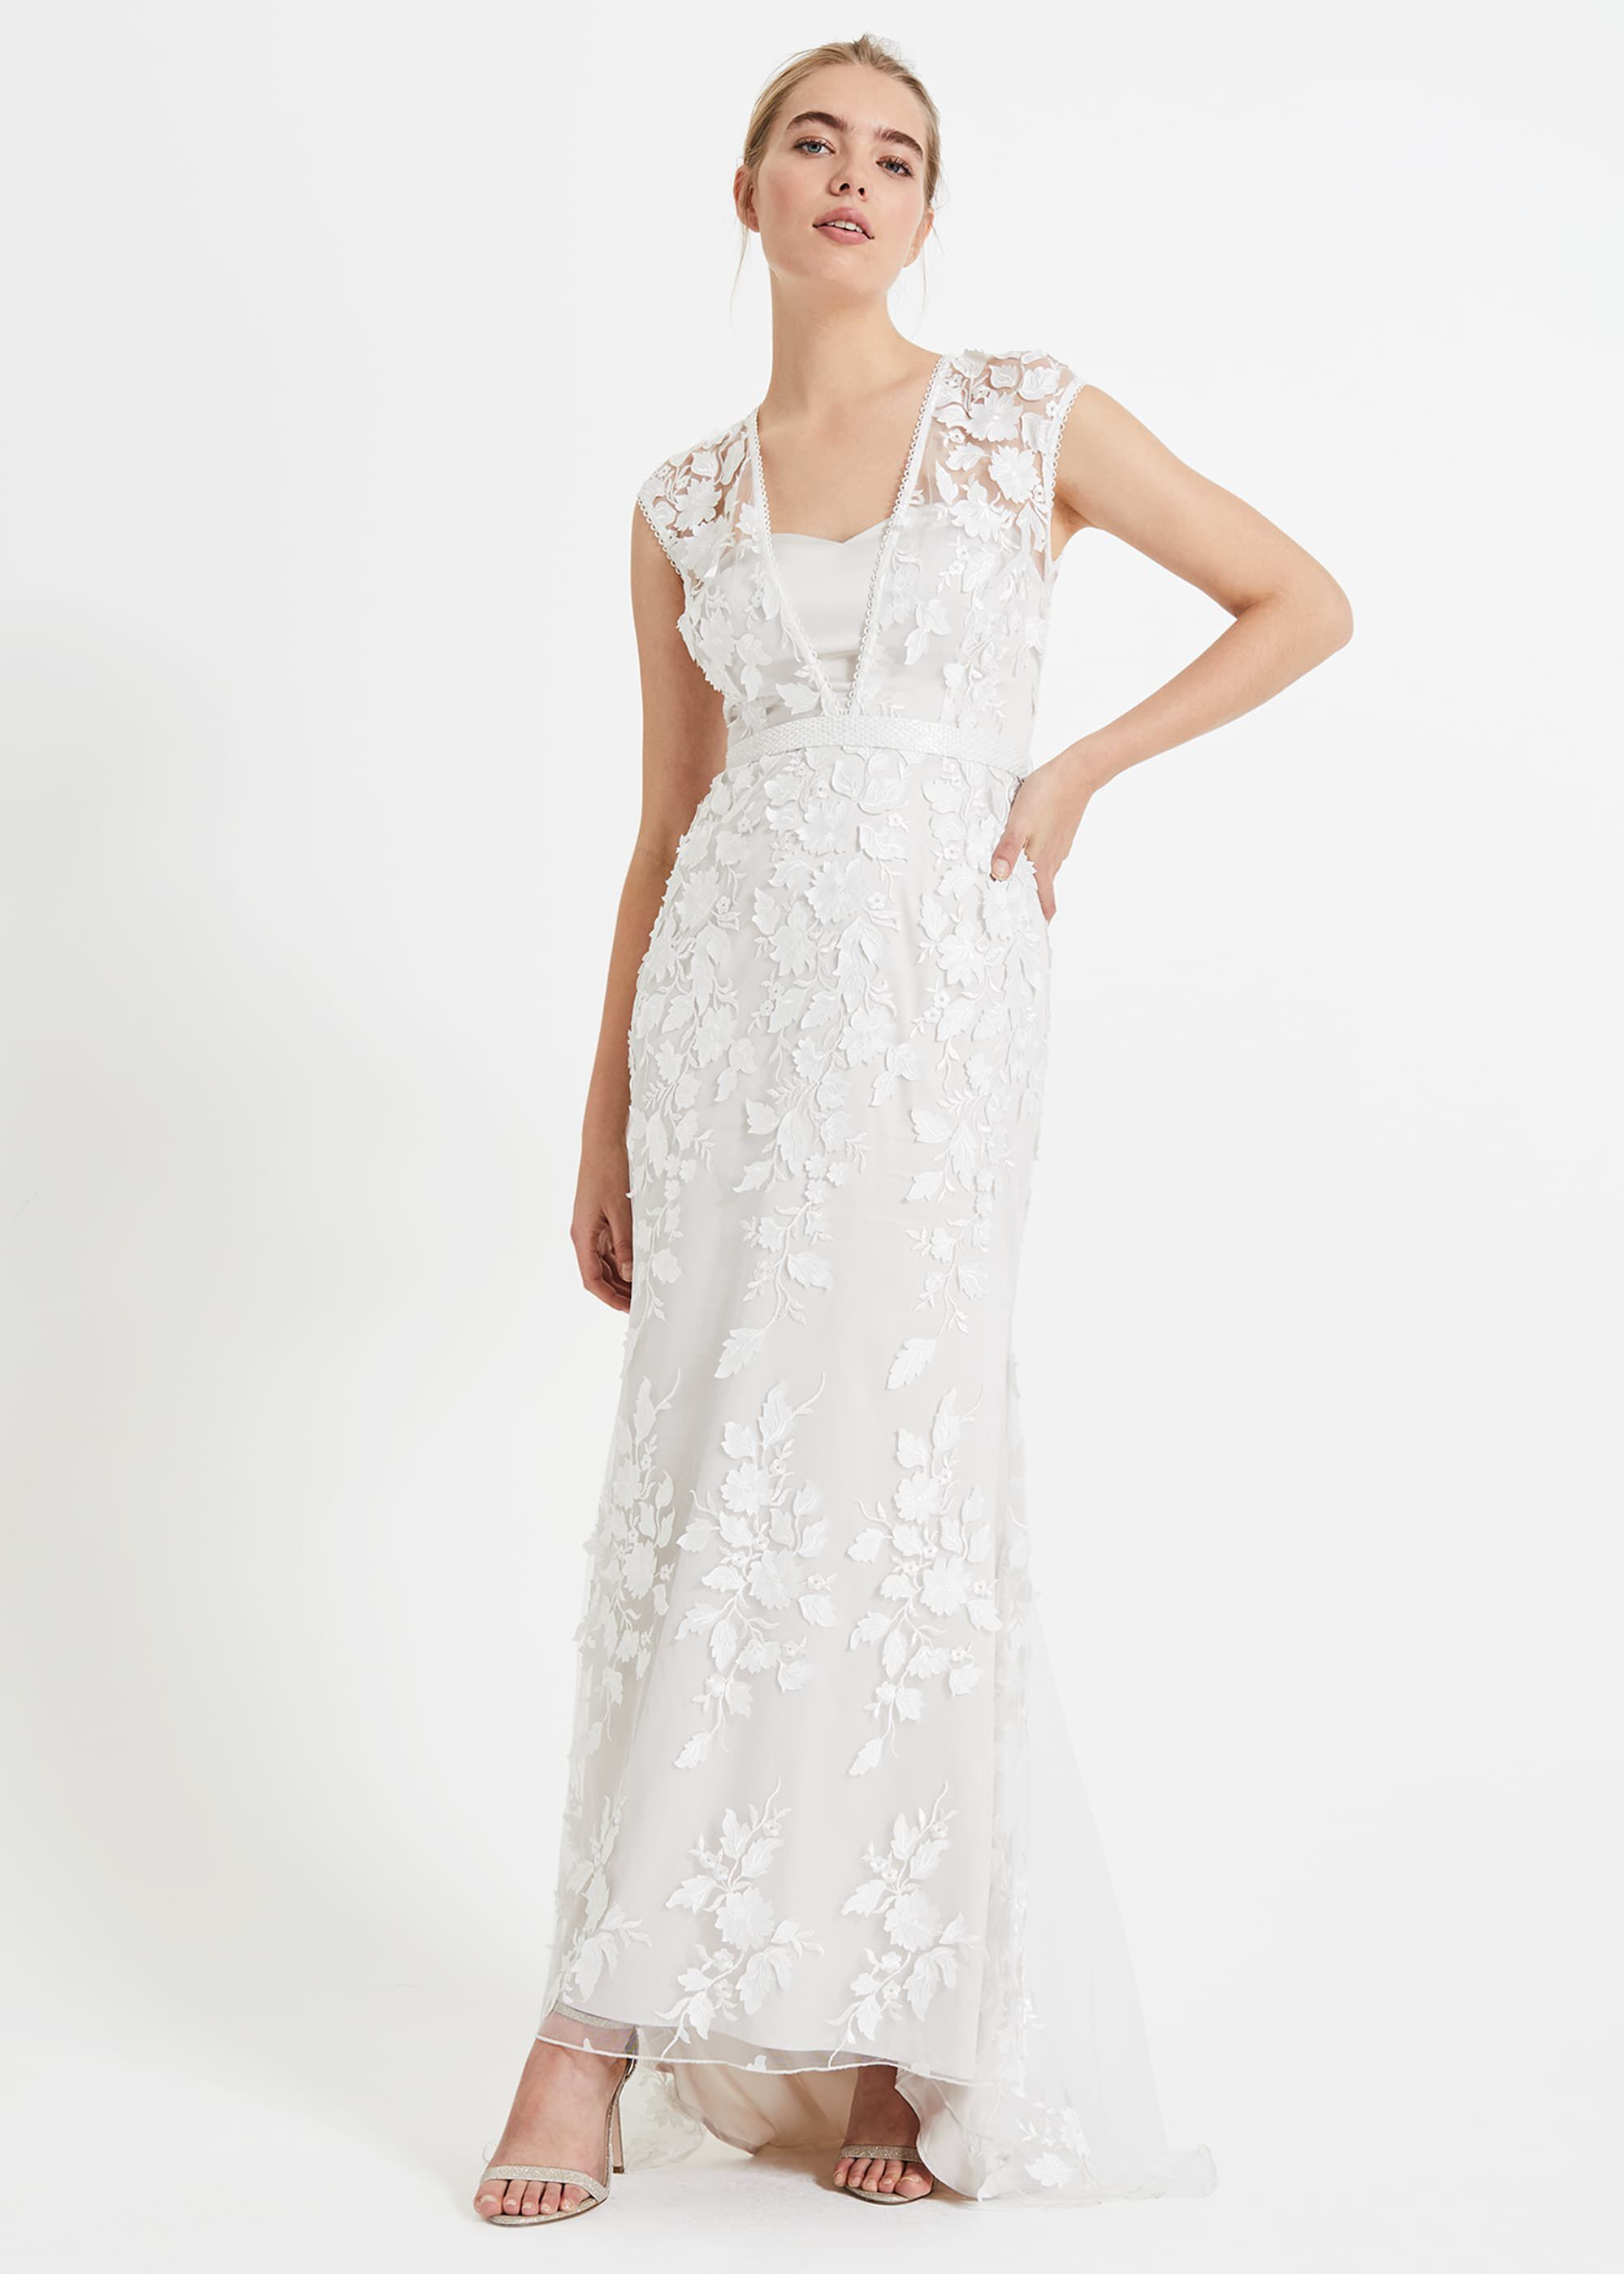 Phase Eight Peony 3d Lace Wedding Dress, Neutral, Maxi